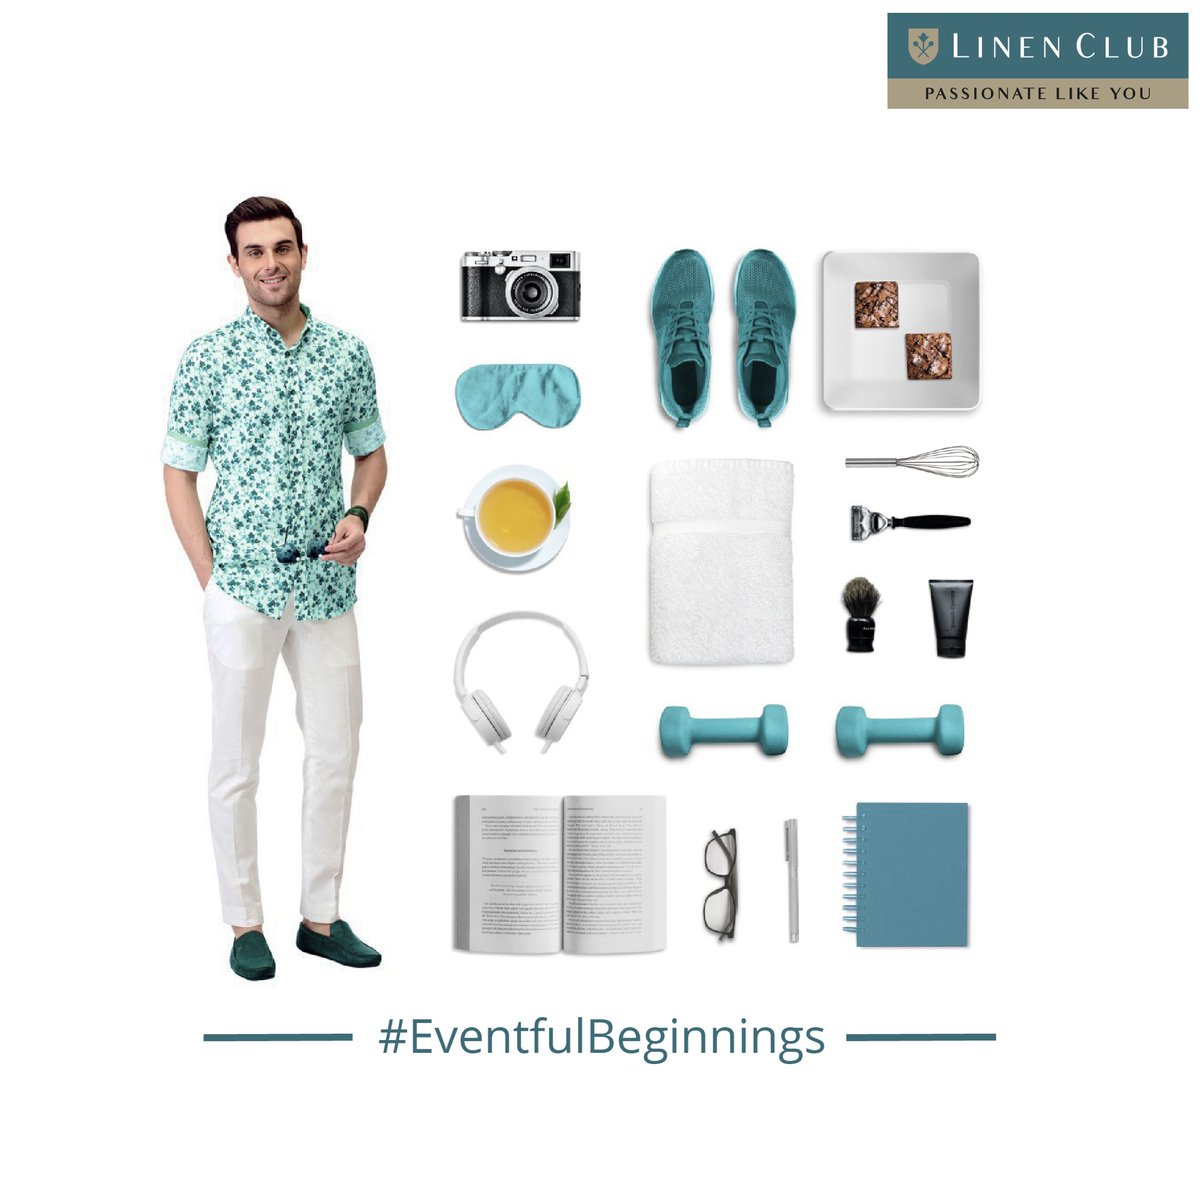 Pick a look from the widest Linen Club collection that truly reflects you, there's nothing to stop you from following your passion. The nearest Linen Club store awaits you.  #EventfulBeginnings #Freshstart  #GoodStart #2021 #Newyear #LinenLifestyle #LinenClub